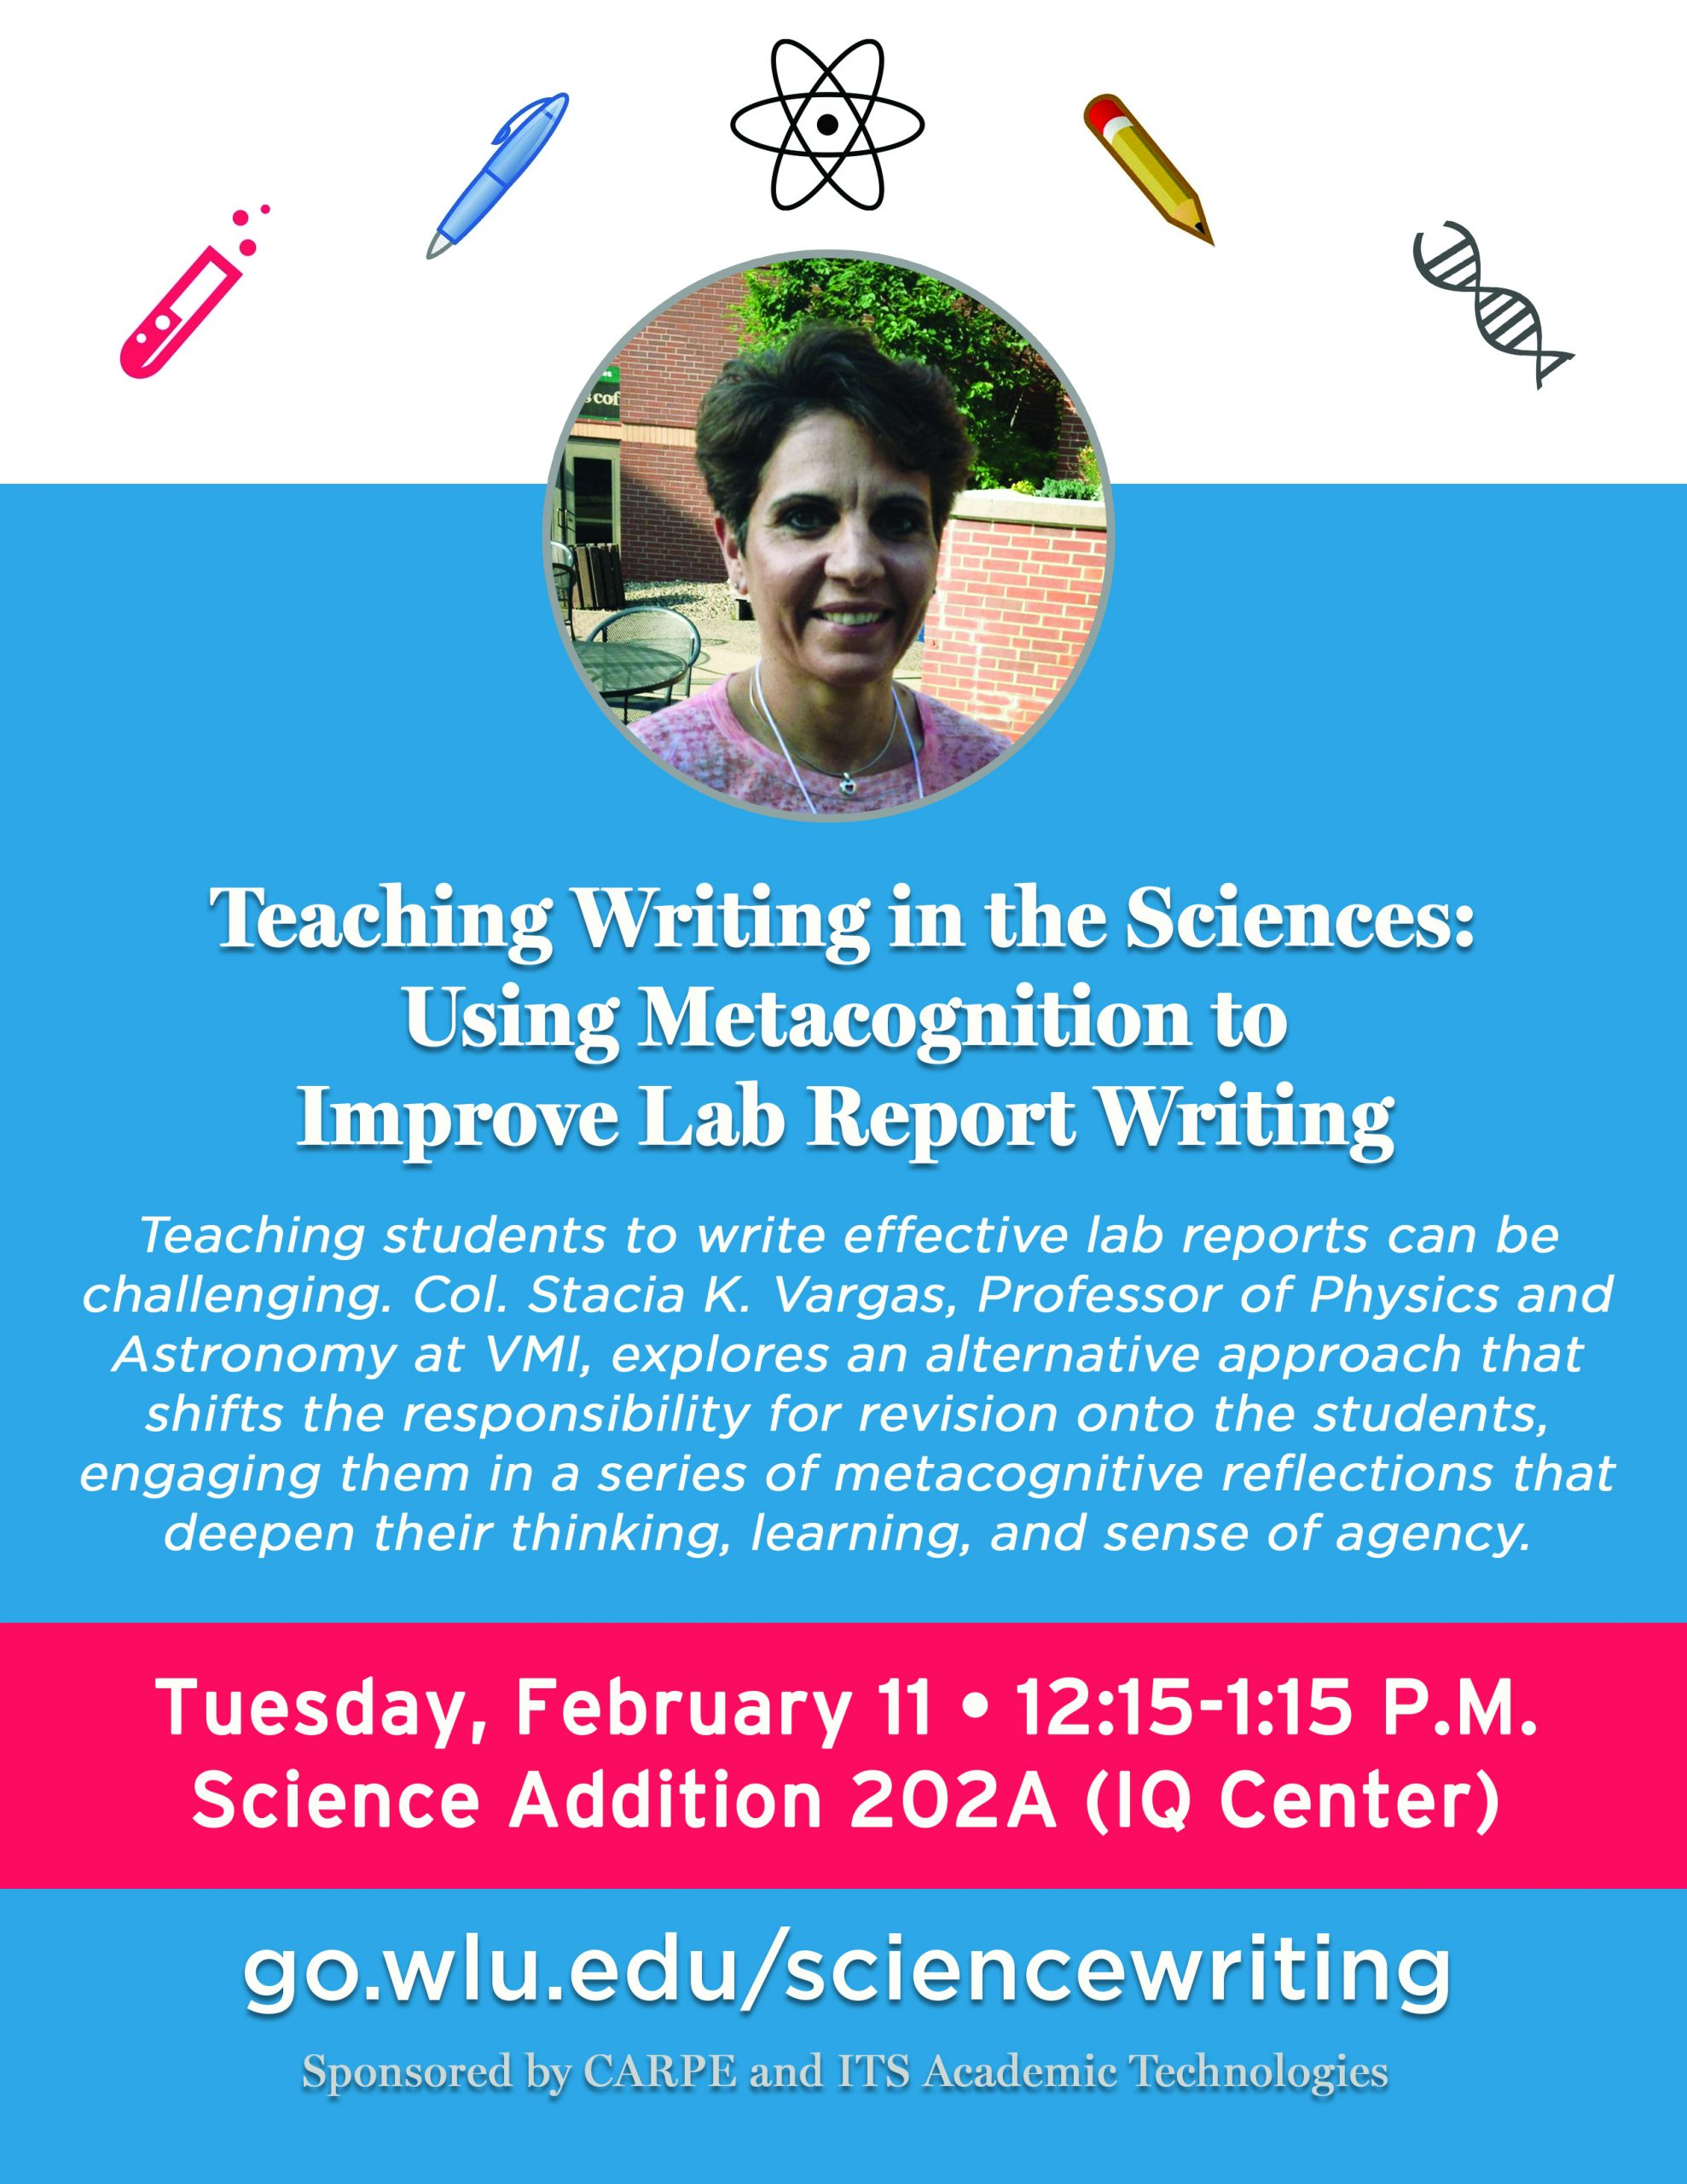 Teaching Writing in the Sciences: Using Metacognition to Improve Lab Report Writing - 2.11.20